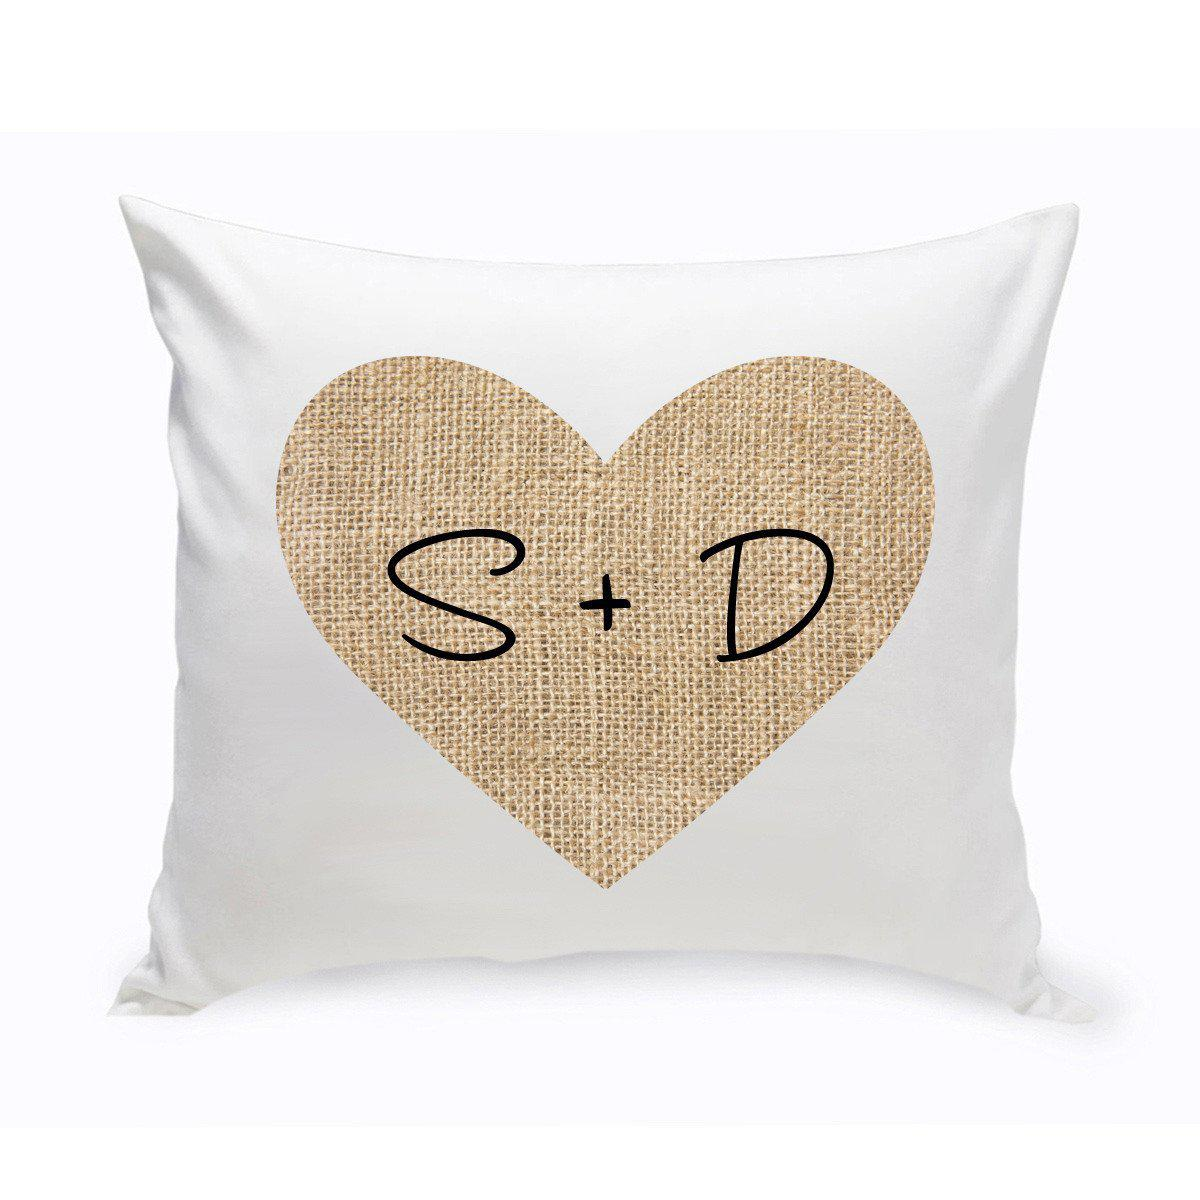 Personalized-Couples-Throw-Pillows-Burlap-Heart